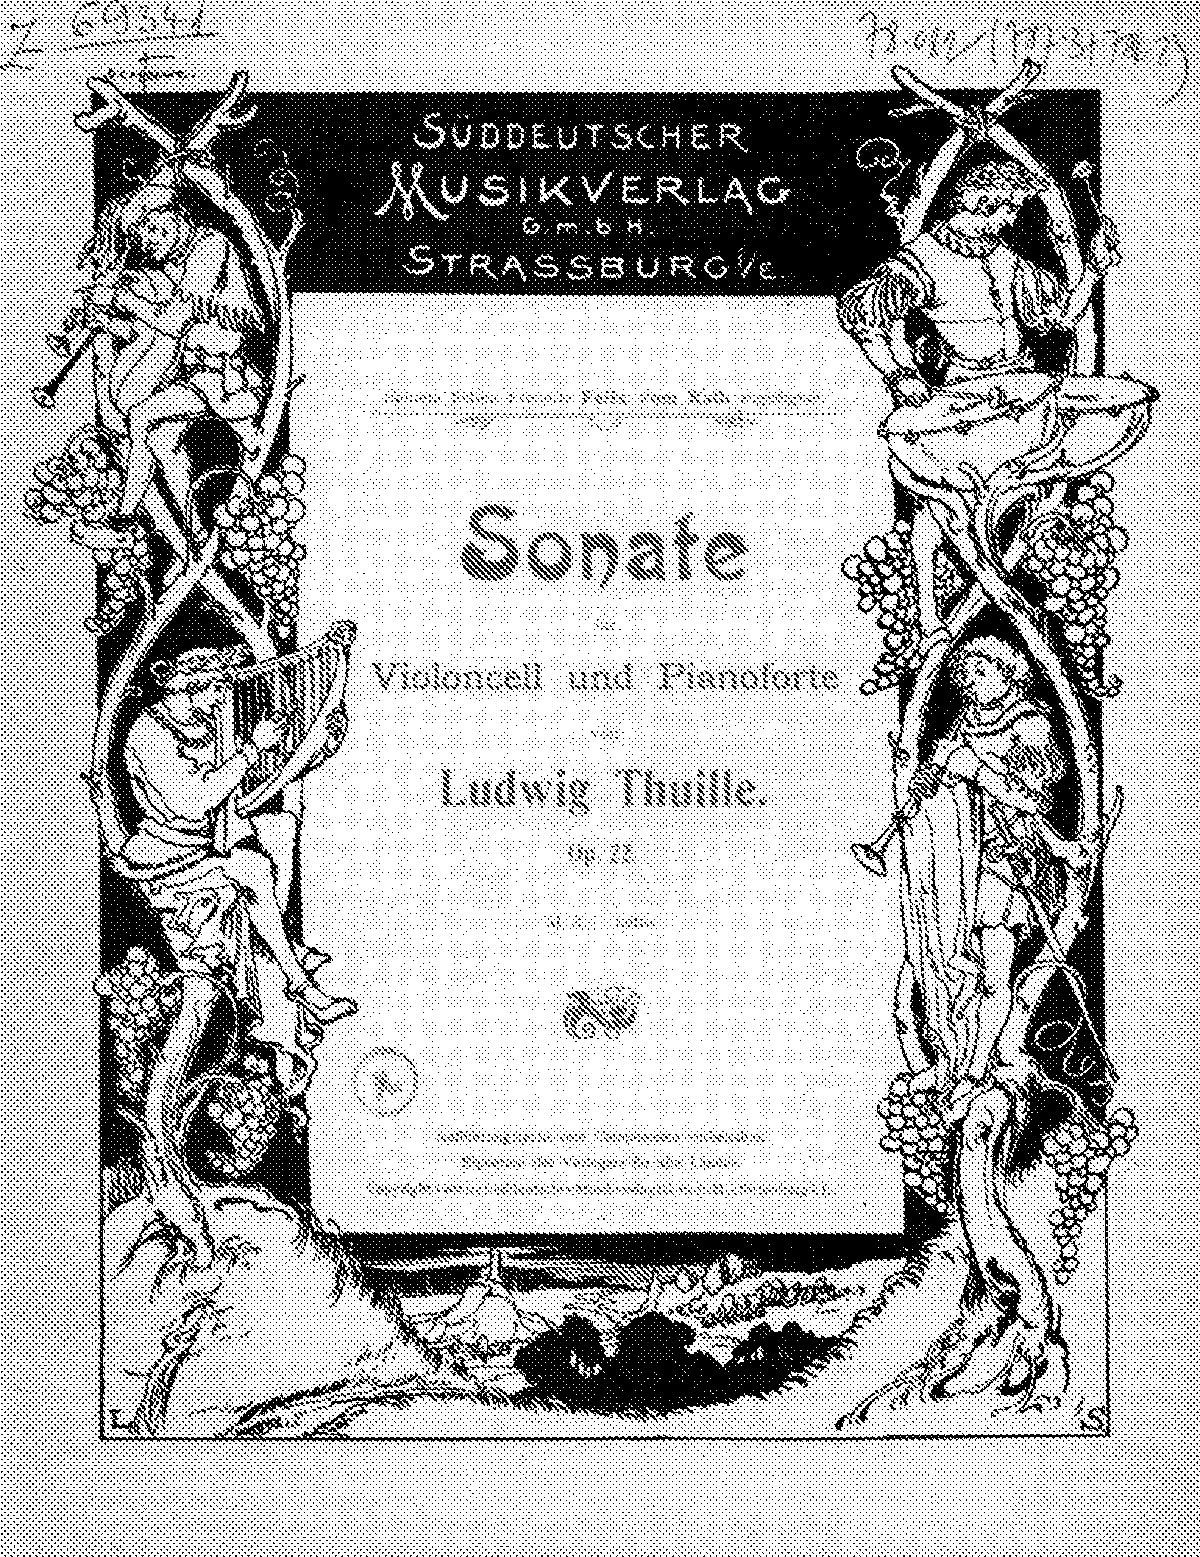 Thuille - Op. 22 Sonata for cello and piano.pdf